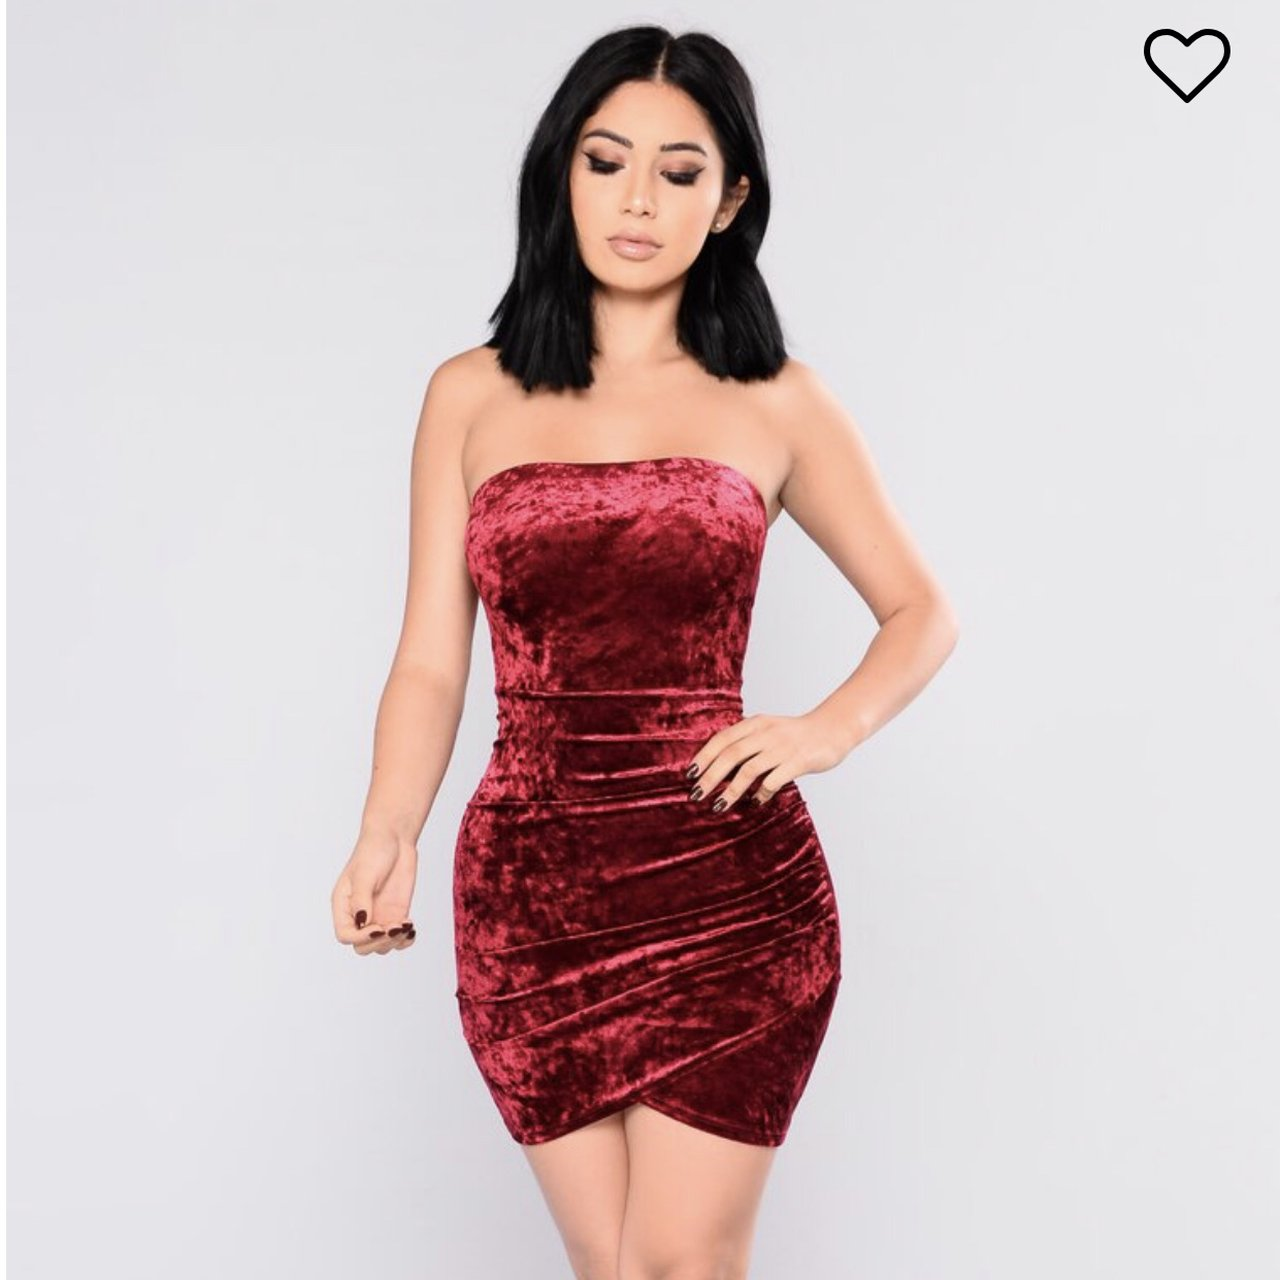 171566a1d27 Fashion Nova Beating Heart Velvet Dress. NWT. RRP is  24.99. - Depop